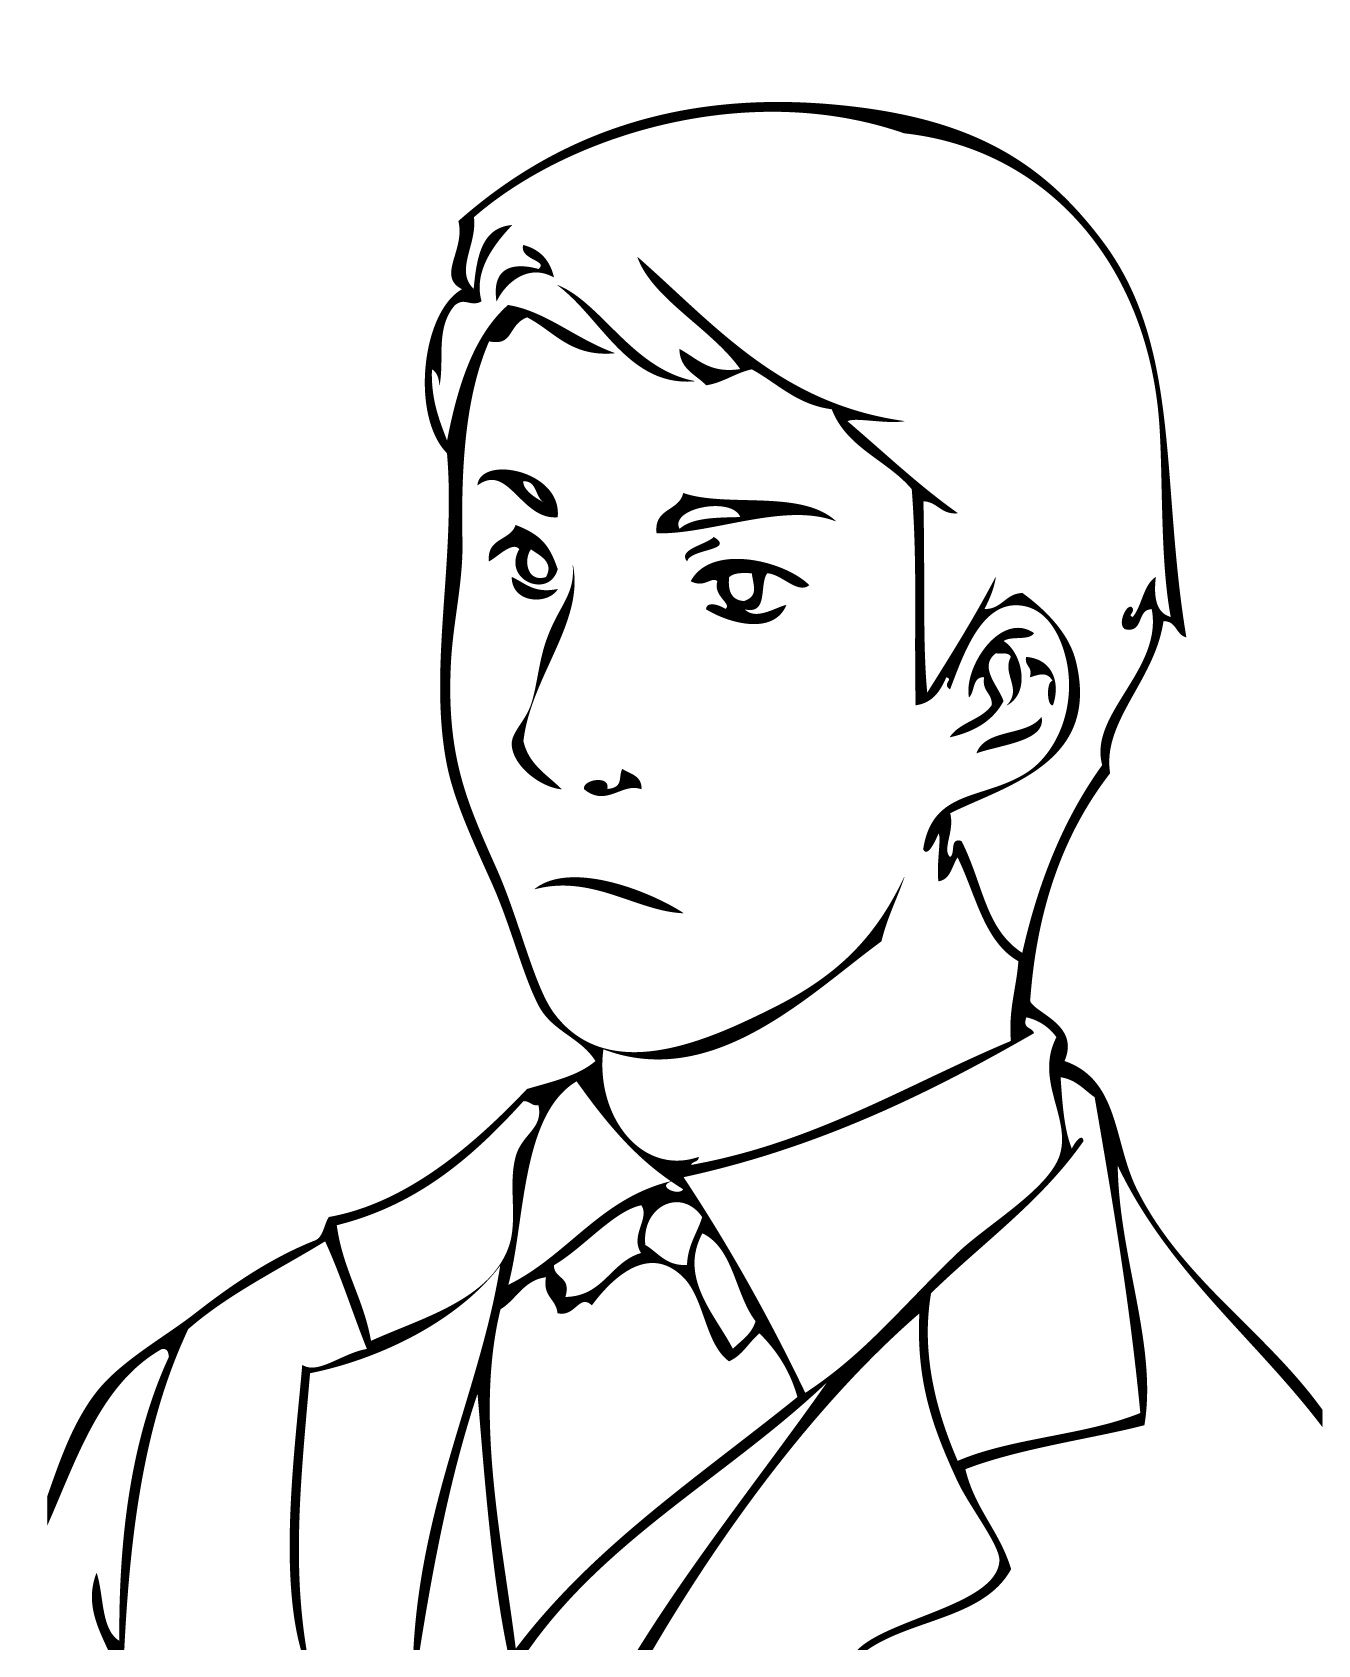 Coloring pages queen elizabeth - Thomas Edison As Young Man Coloring Page